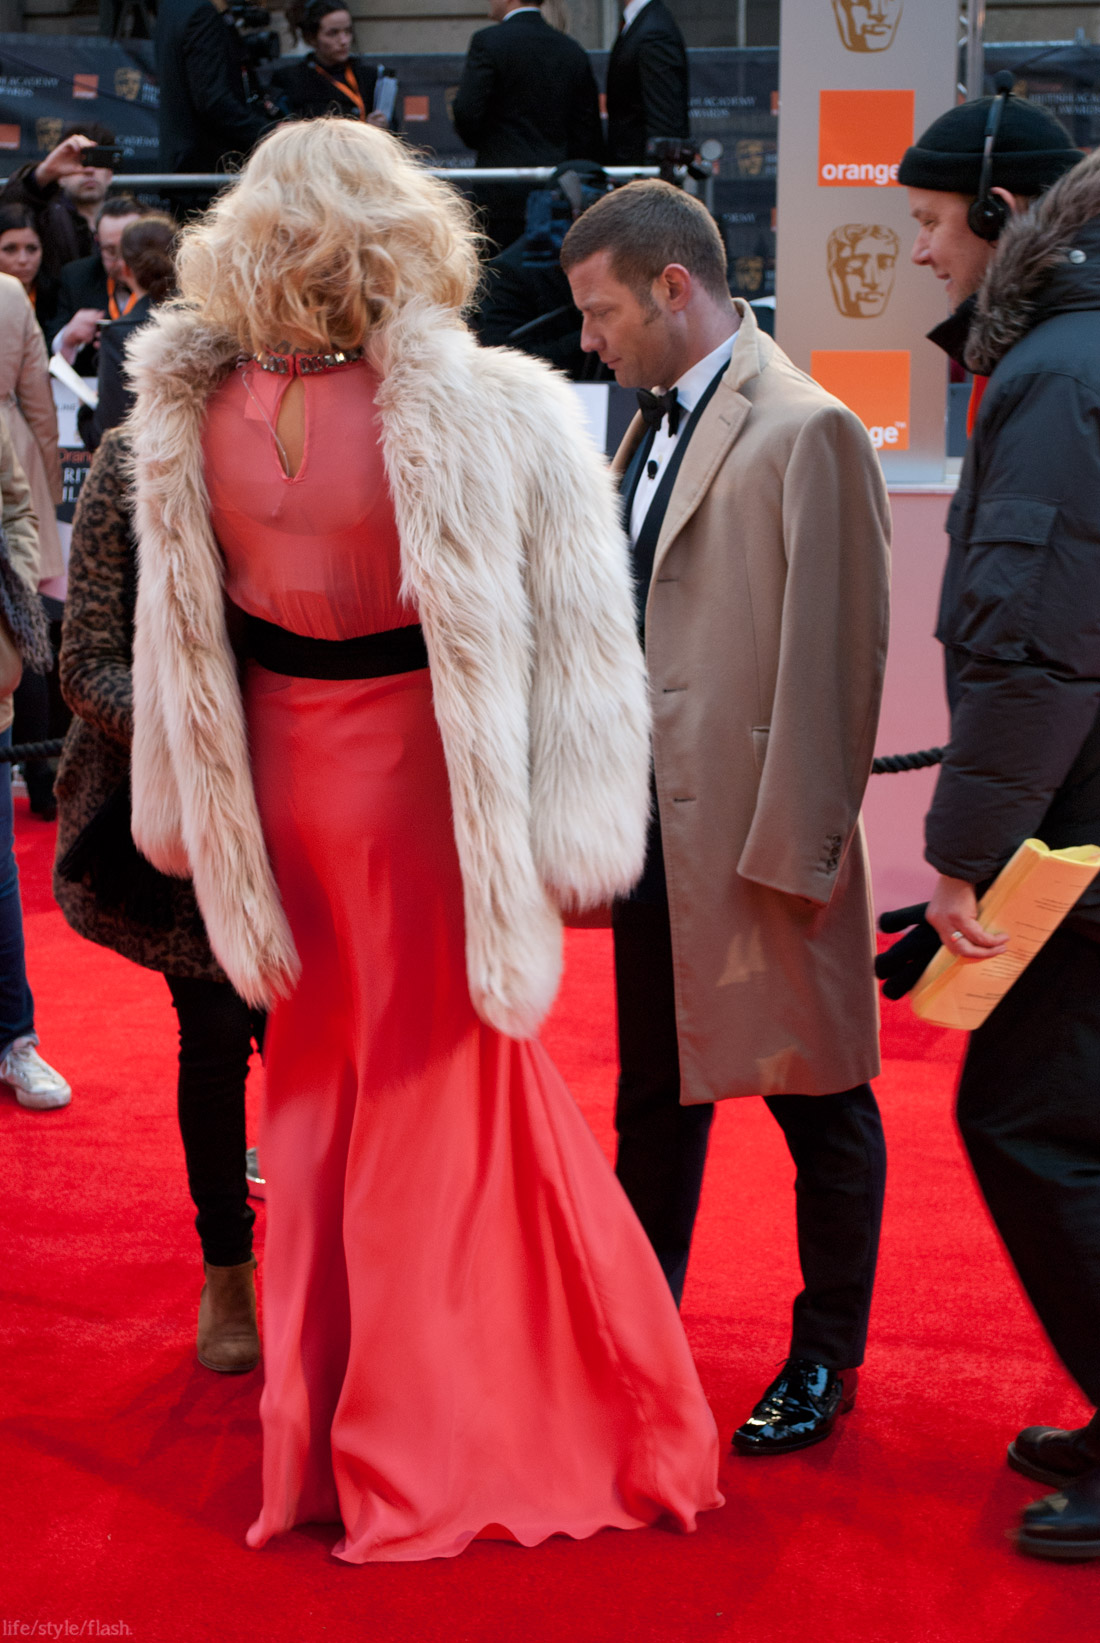 BAFTA awards 2012 - Fearne Cotton and Dermot O'Leary on the red carpet